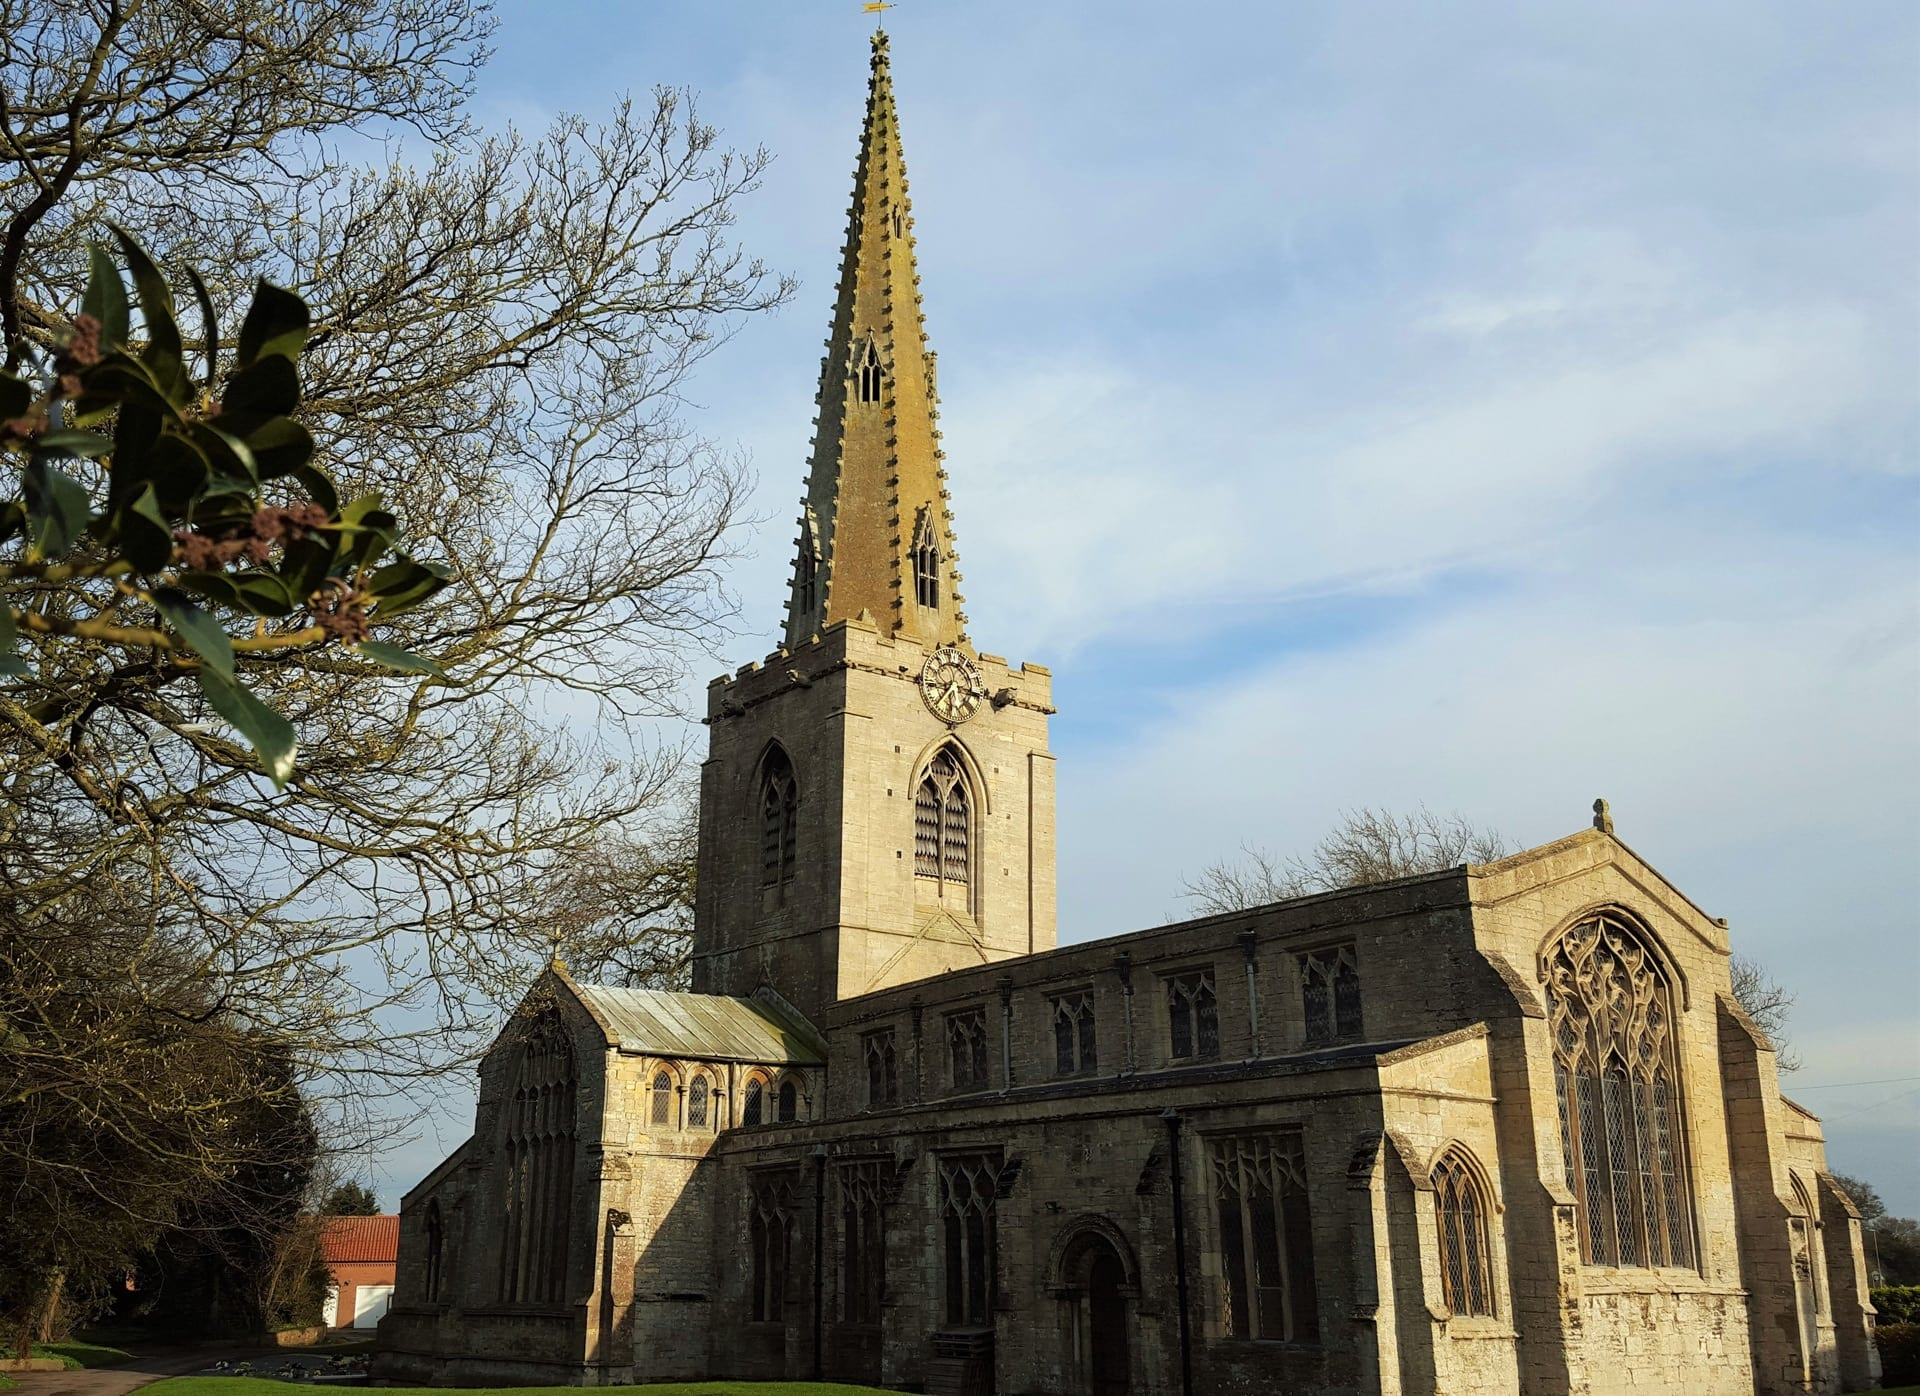 The Church of St Mary the Blessed Virgin, Parish Church of Sutterton, Lincolnshire